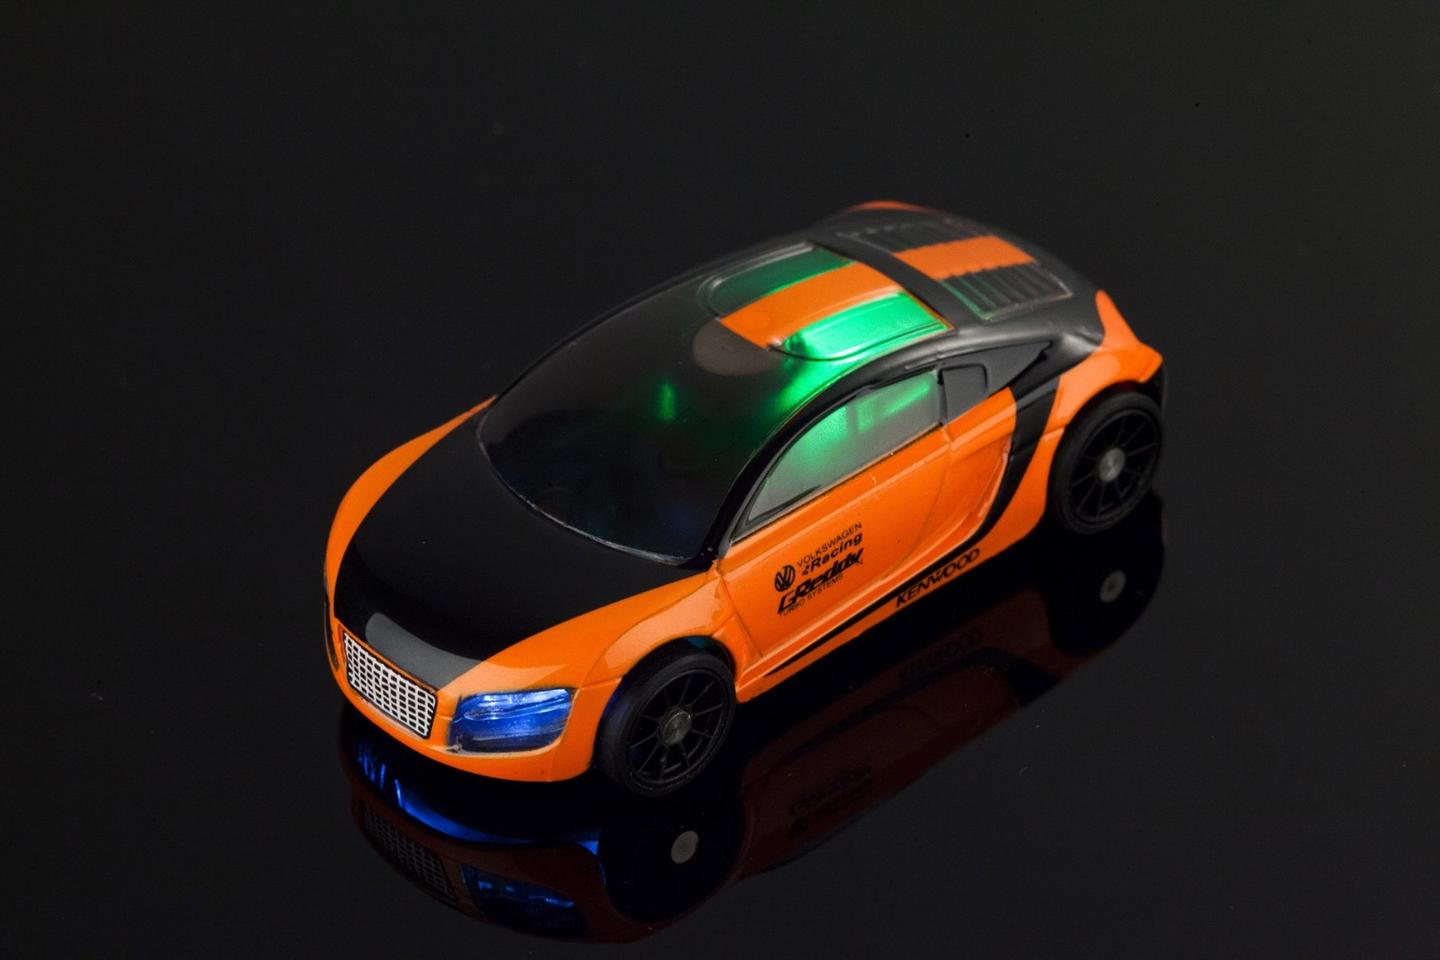 Pocket Racing cars have lights that change with the car's speed in the game